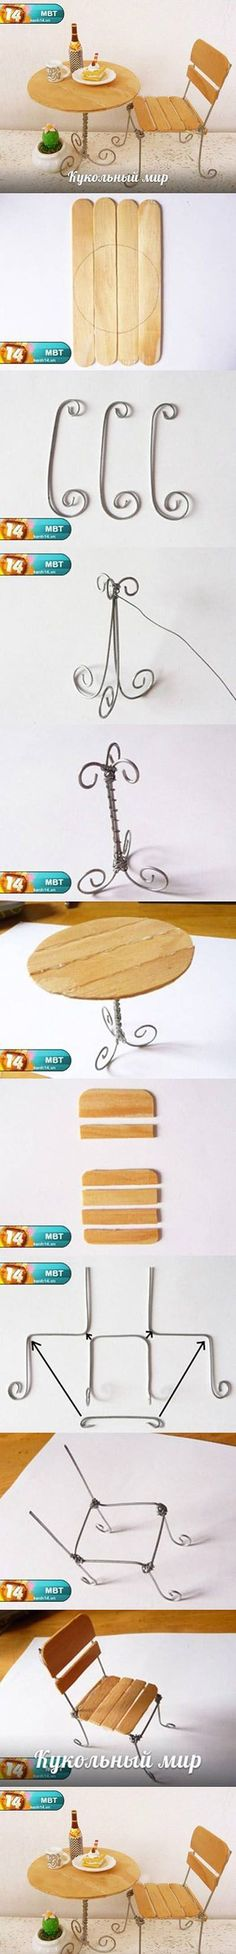 DIY Popsicle Stick Desk and Chair DIY Popsicle Stick Desk and Chair by diyforeve. DIY Popsicle Stick Desk and Chair DIY Popsicle Stick Desk and Chair by diyforever Fairy Furniture, Doll Furniture, Dollhouse Furniture, Miniature Furniture, Paper Furniture, Furniture Chairs, Outdoor Furniture, Furniture Ideas, Miniature Chair